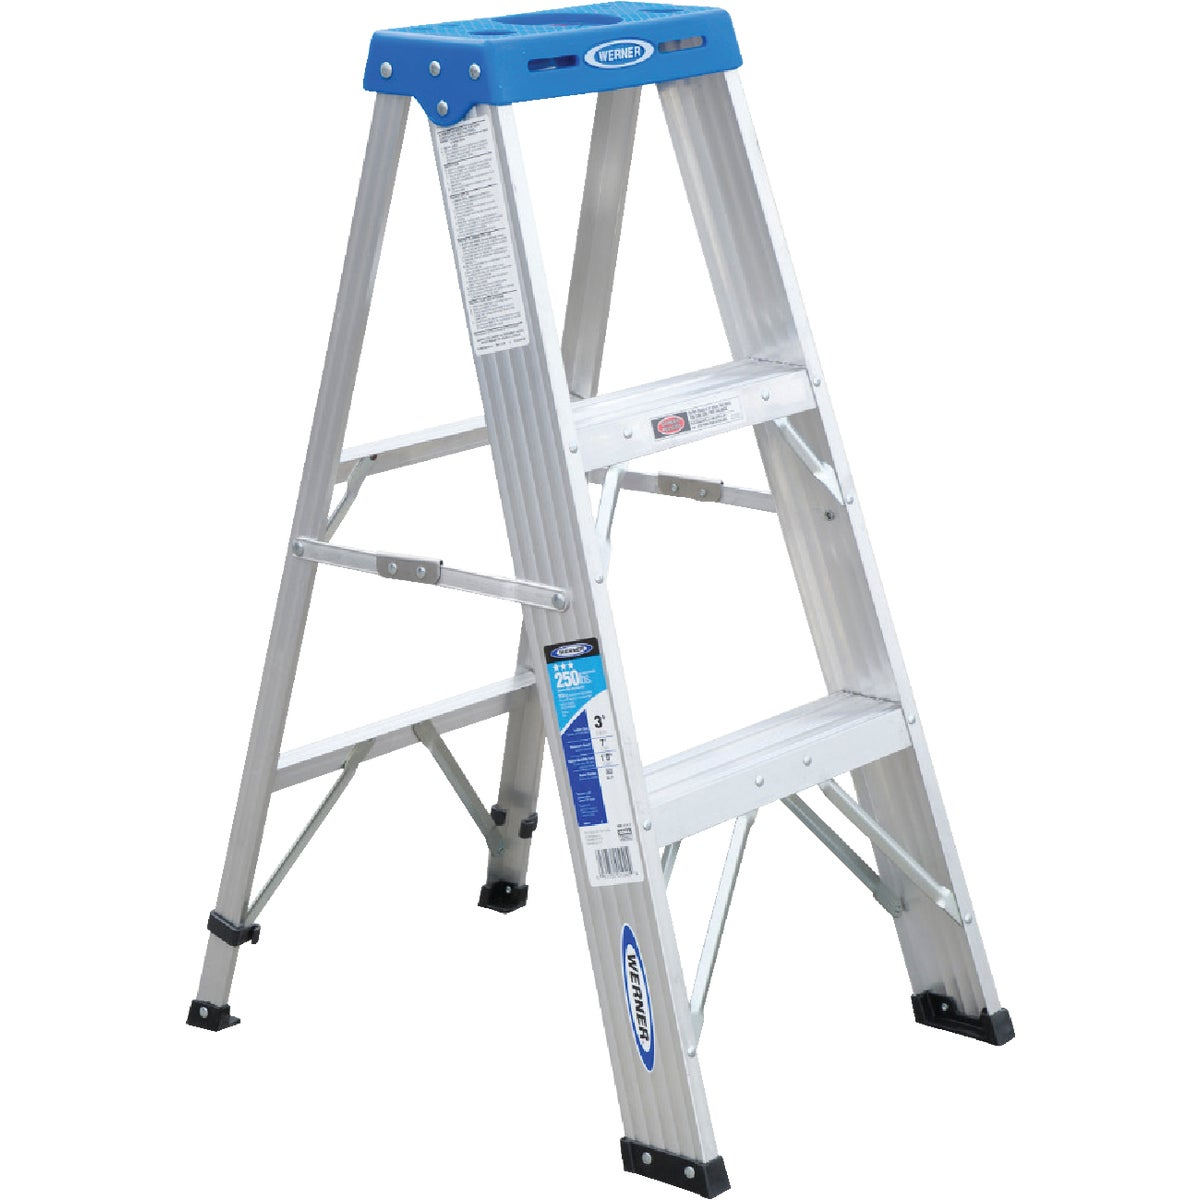 T-1 3' ALUM STEPLADDER - 363 by Werner Ladder